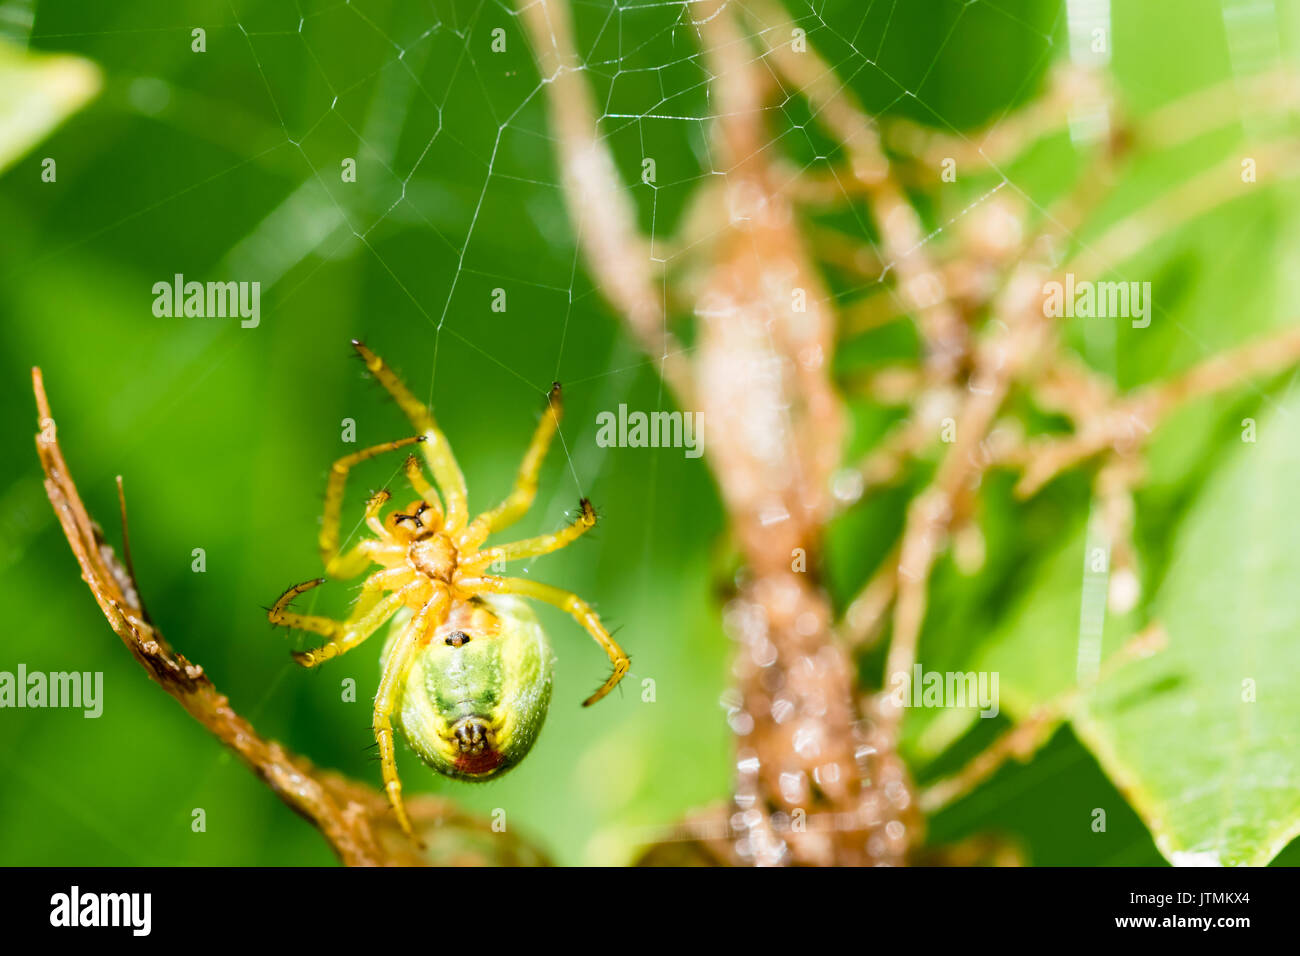 A small green spider (cucumber green spider - Araniella cucurbitina) on the web waits for a food. This spider is not poisonous for human. Smooth green - Stock Image